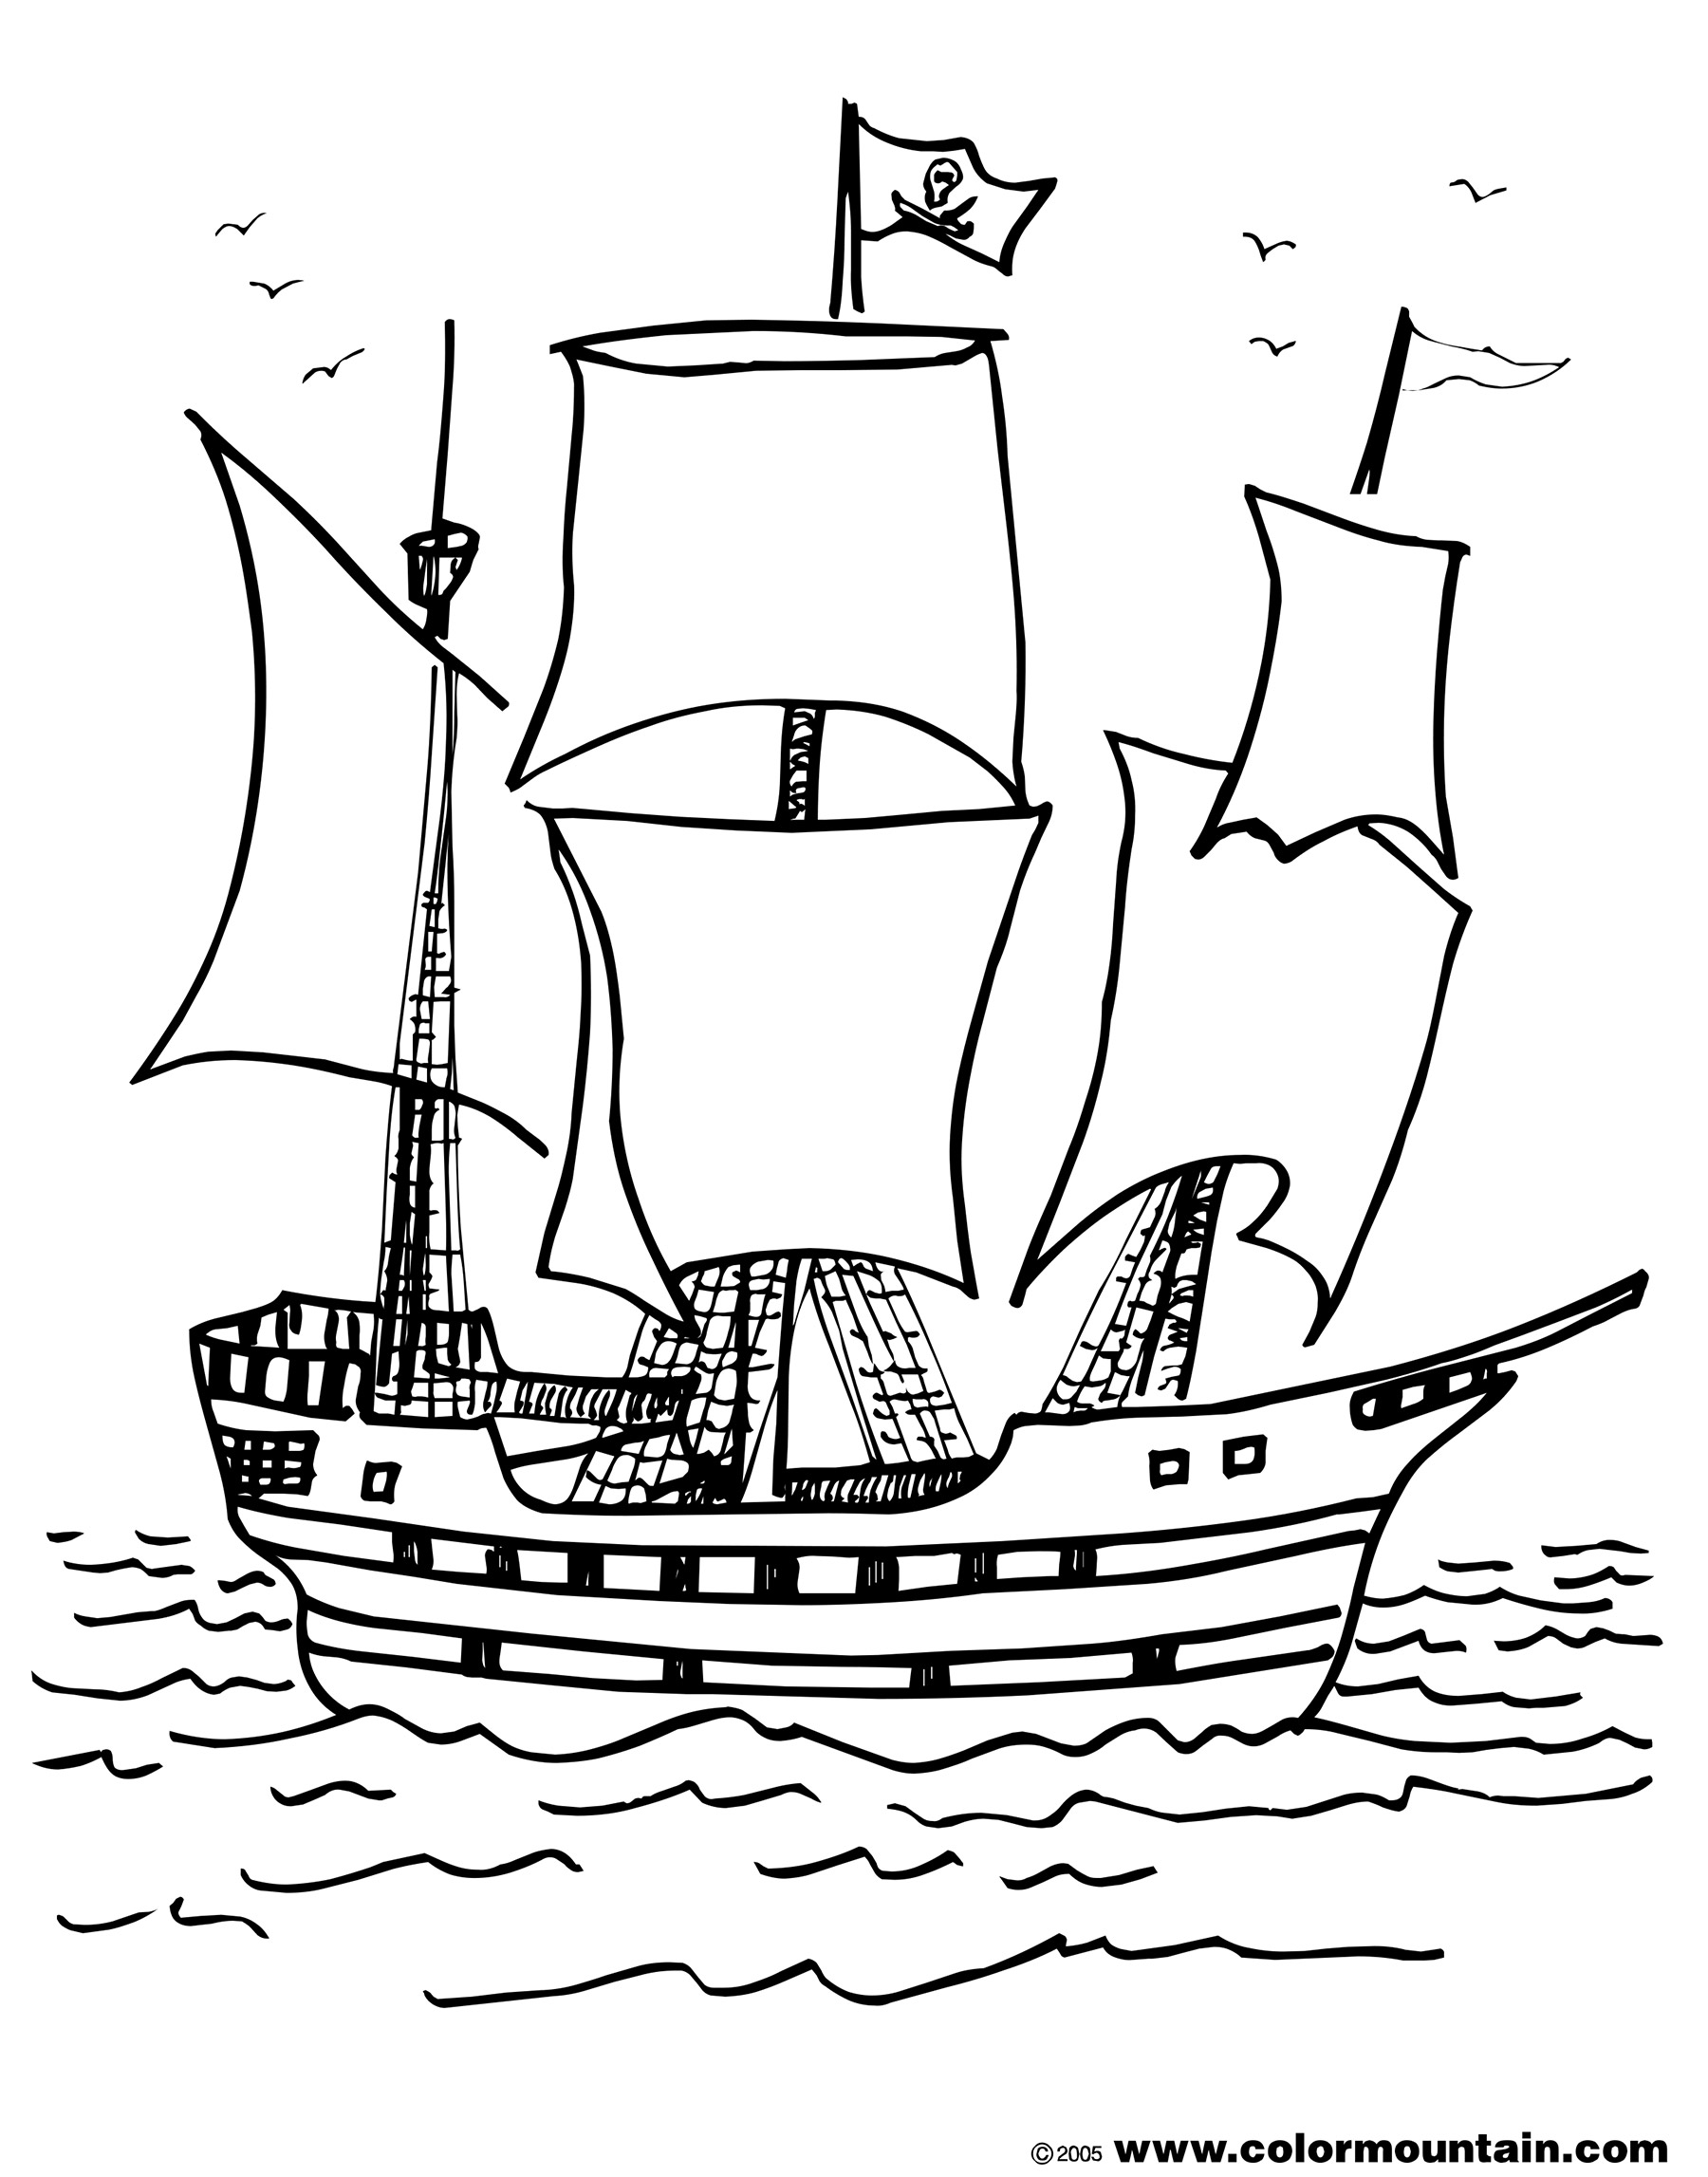 Pirate ship coloring pages to download and print for free